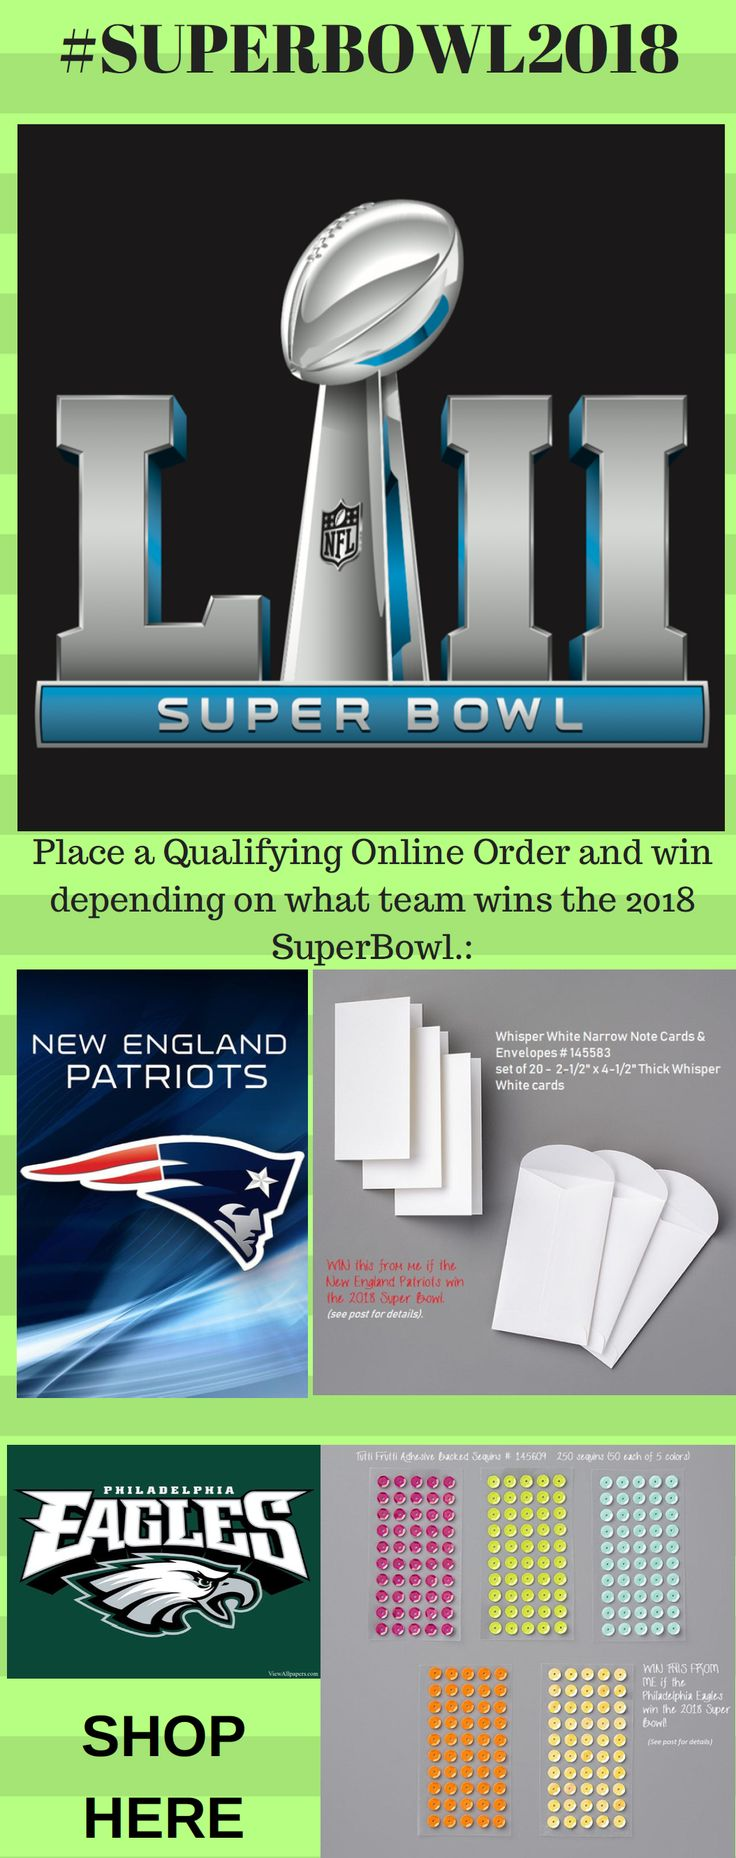 #SUPERBOWL2018  Regardless of which team wins, YOU can win when you place a qualifying order.  You'll win the #WhisperWhiteNarrowNoteCards or the #TuttiFruittiSequins when you place an online order of $50 or more before the end of the game.  #NancyGleason #MyStampinSpace